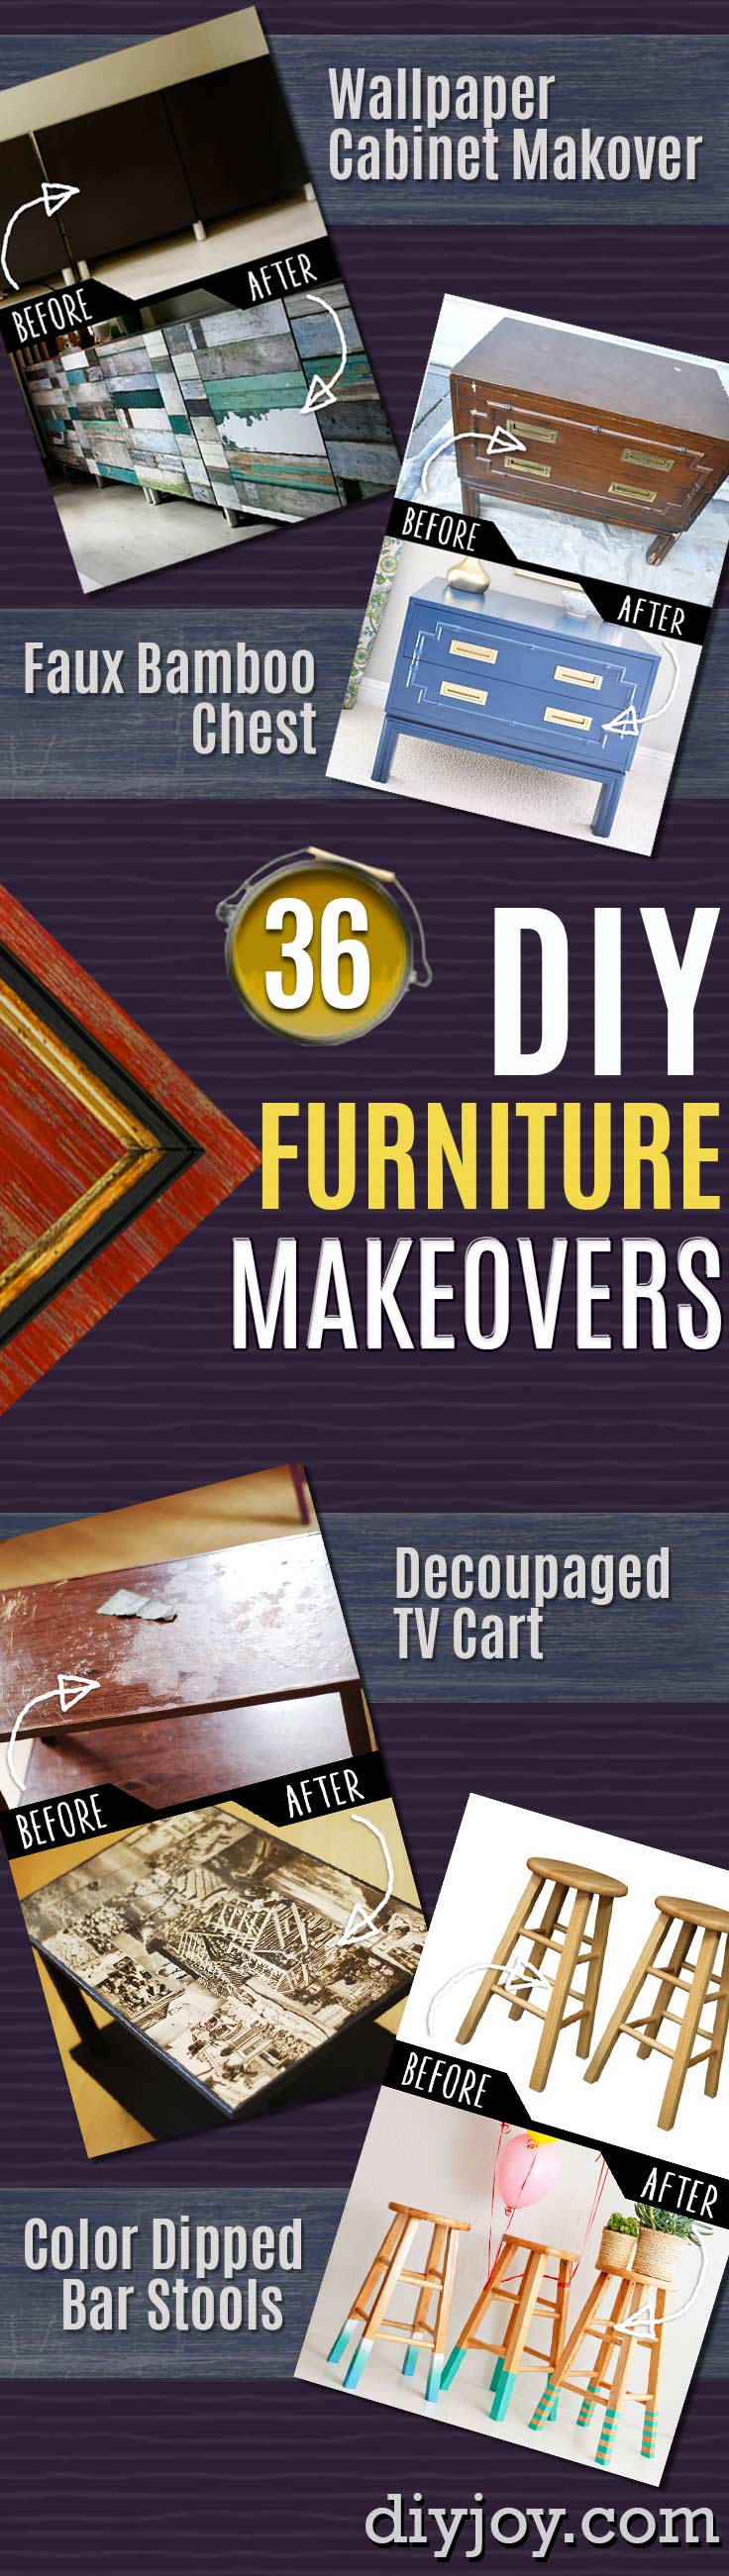 DIY Furniture Makeovers - Refurbished Furniture and Cool Painted Furniture Ideas for Thrift Store Furniture Makeover Projects | Coffee Tables, Dressers and Bedroom Decor, Kitchen